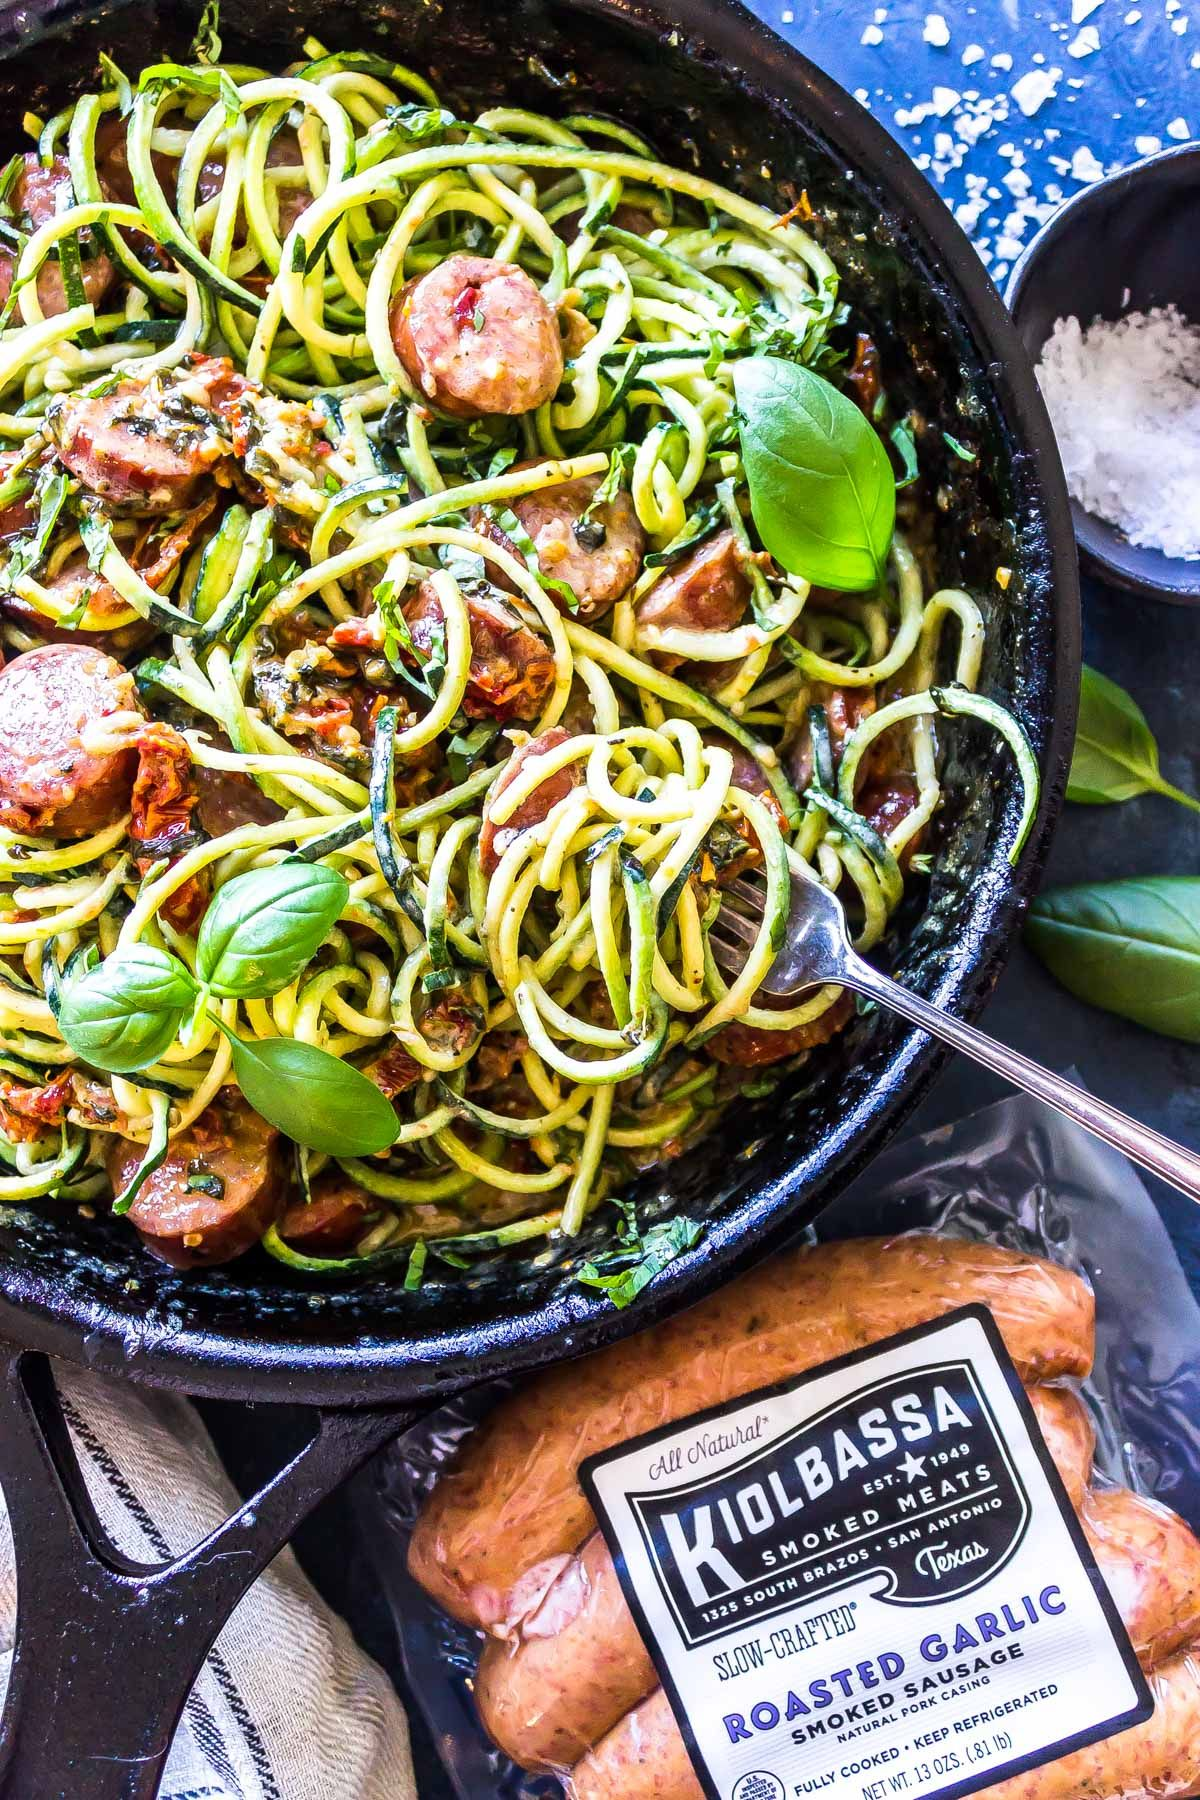 a black skillet contains courgetti mixed with sliced sausage. In the foreground is a packet of the Kiolbassa Roasted Garlic smoked sausage